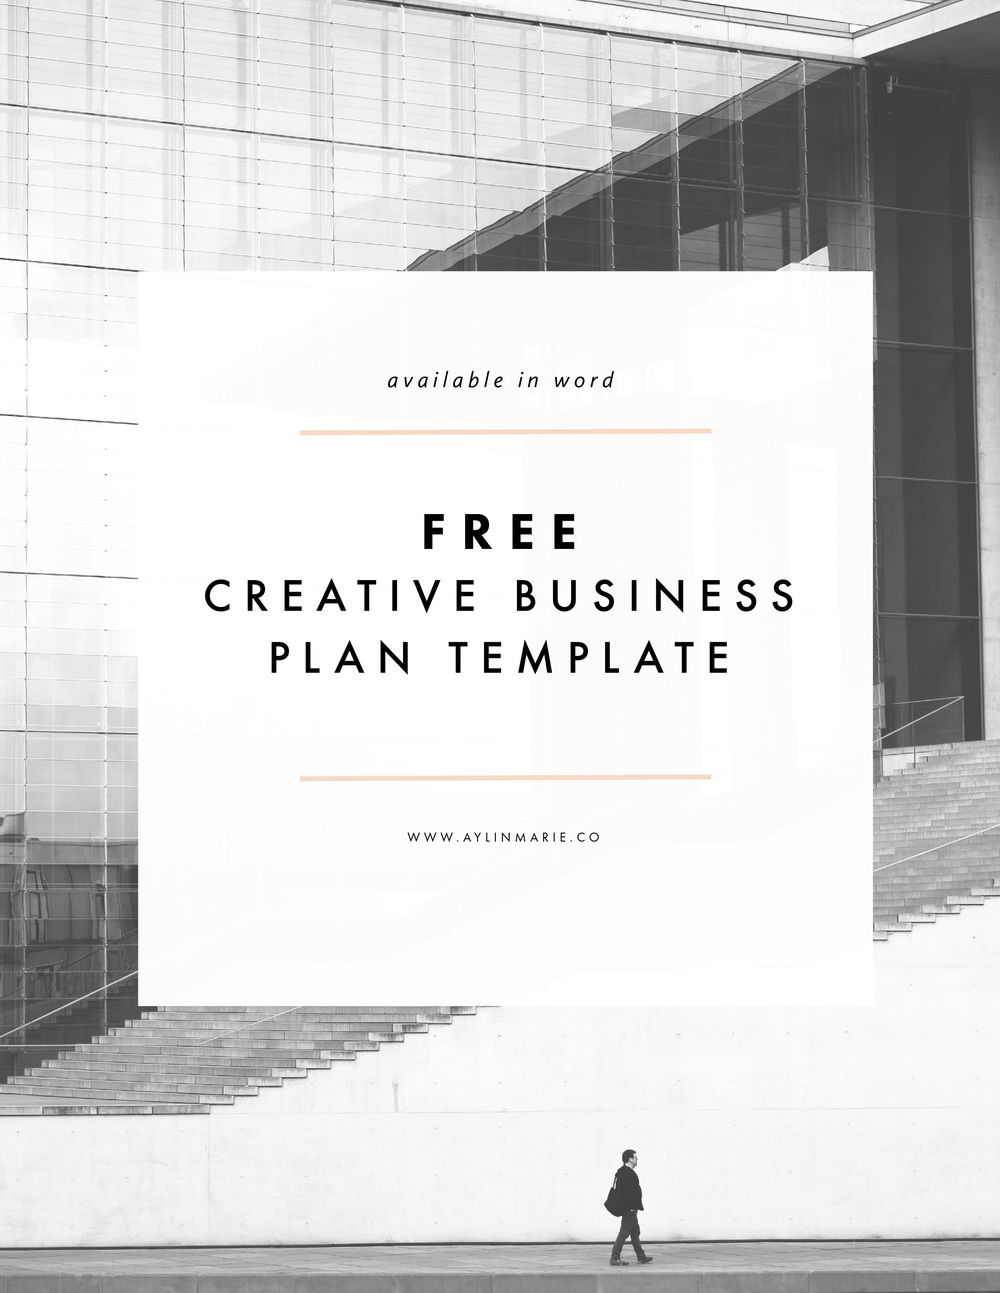 Freebie creative business plan template aylin marie freebie creative business plan template accmission Image collections